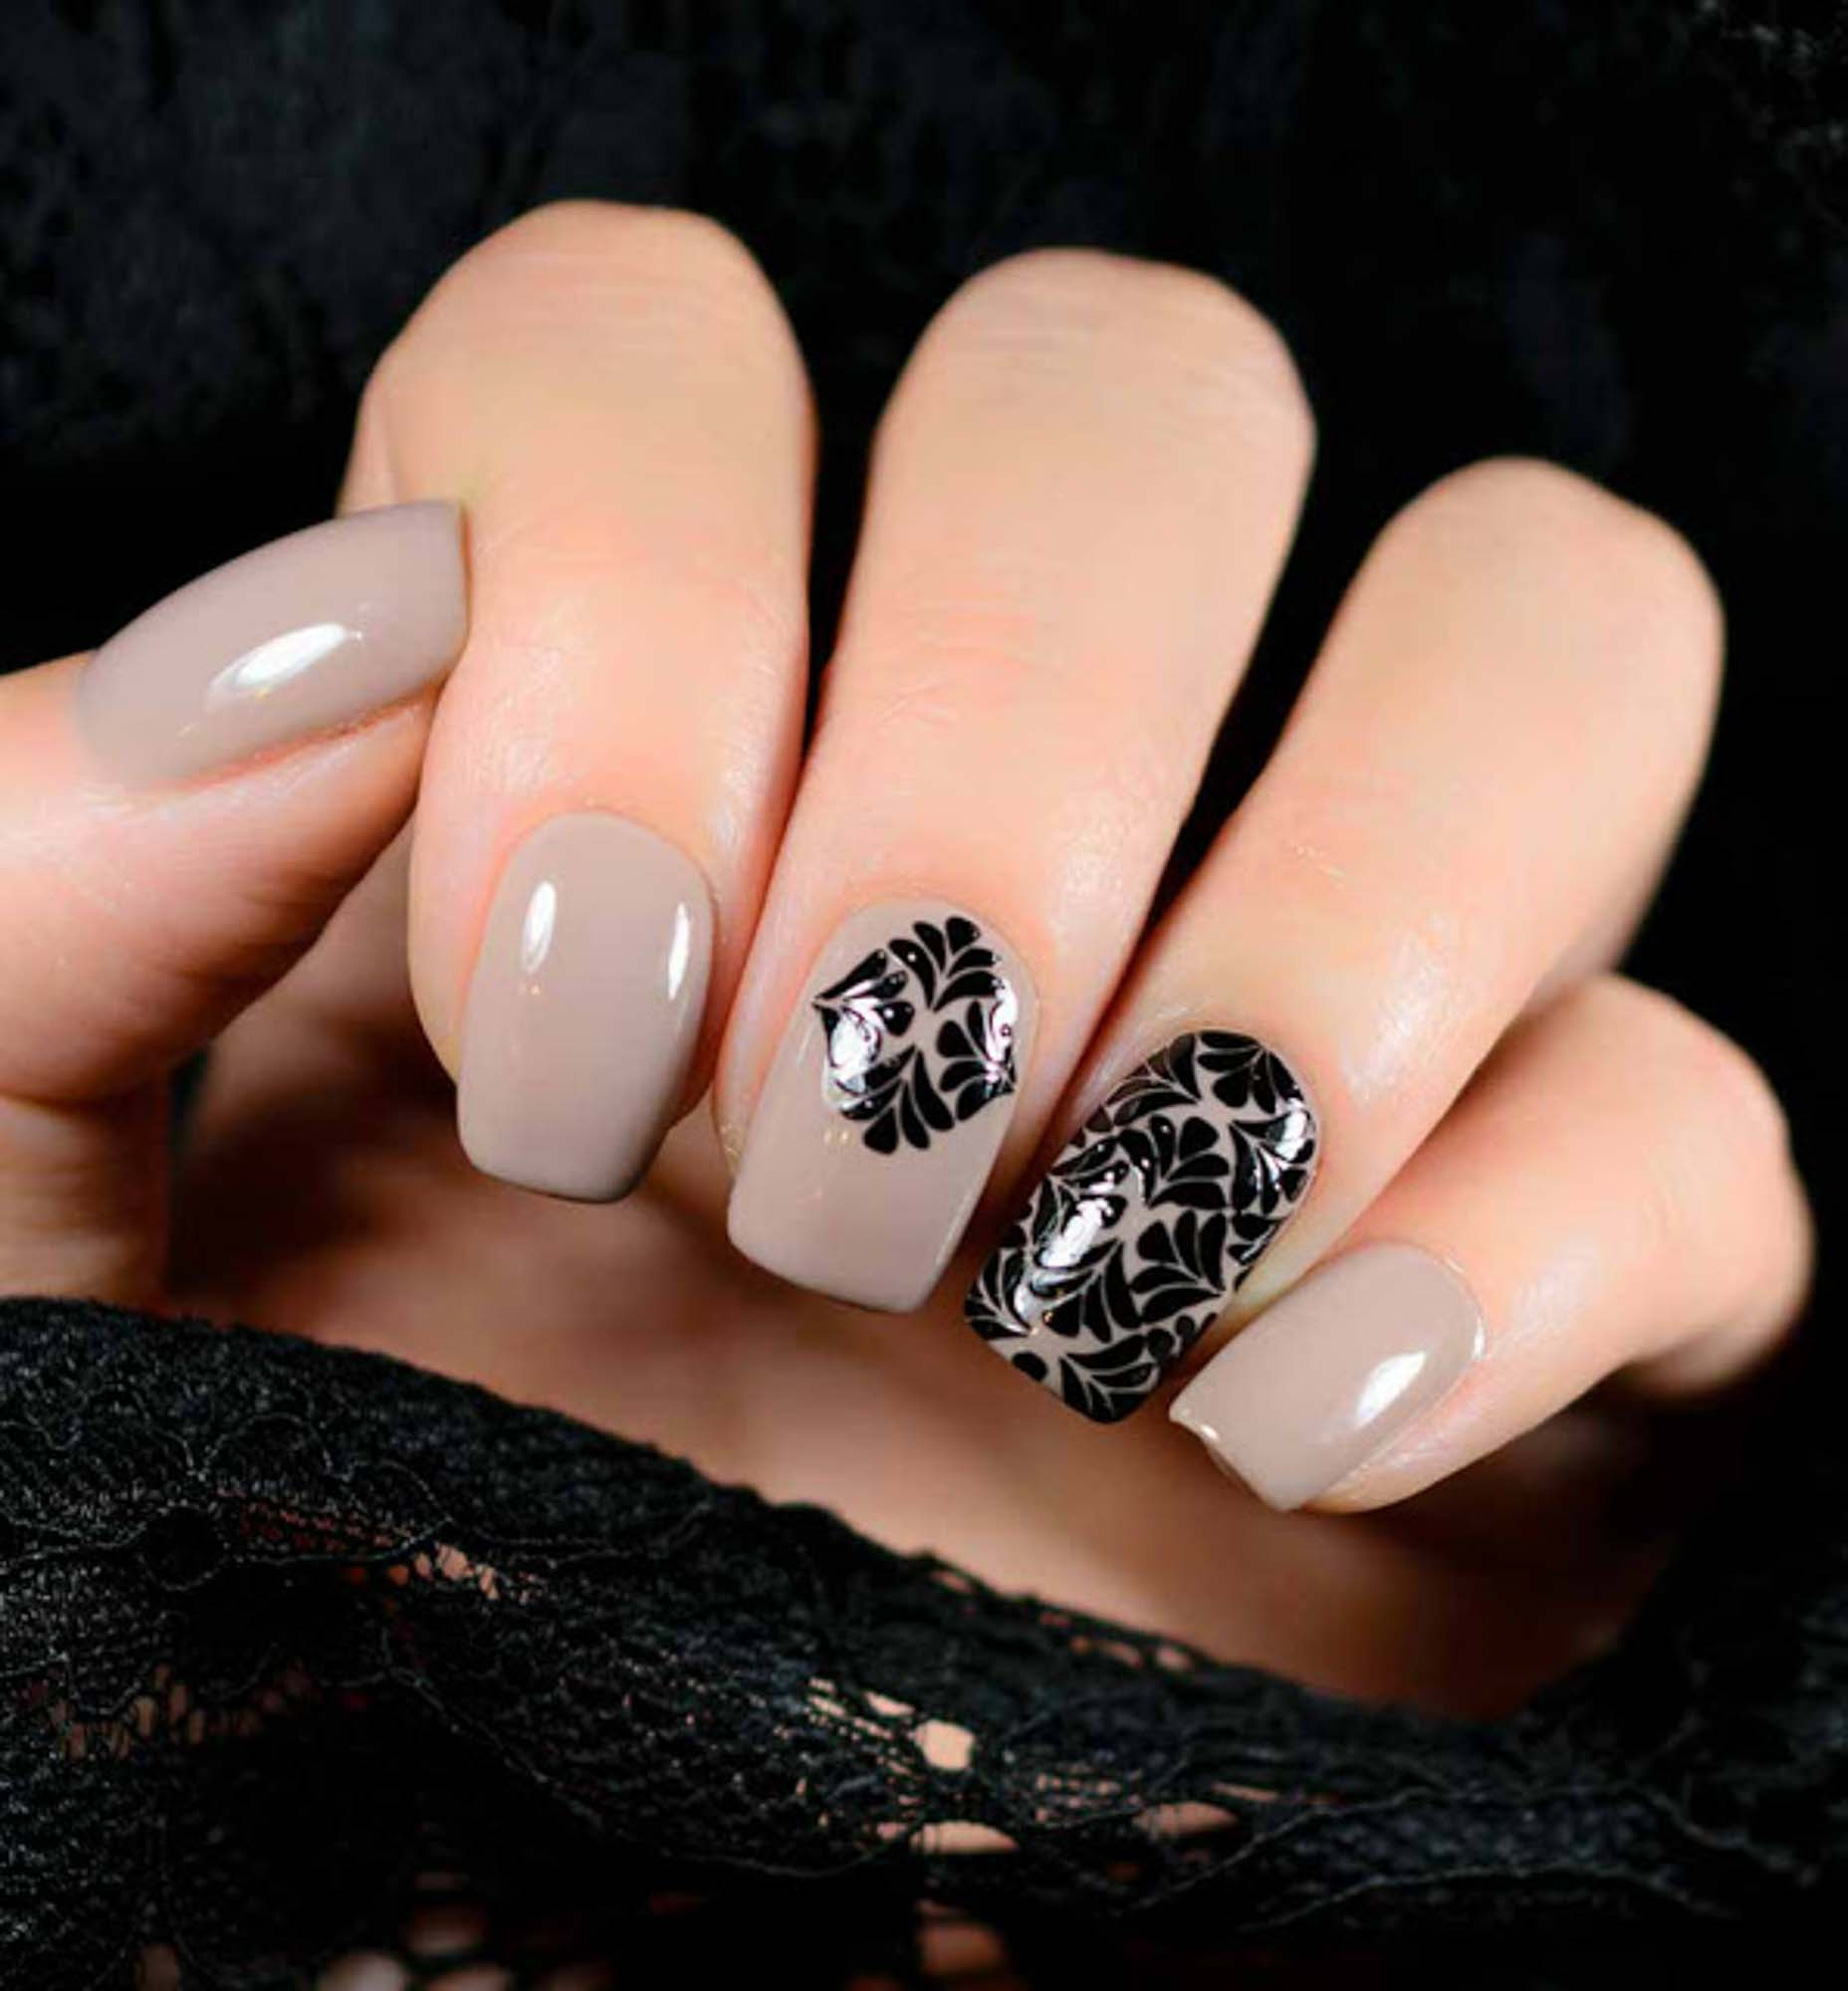 4-nails-unghie-il-ciuffo-fashion-e-beauty-vercelli-blog